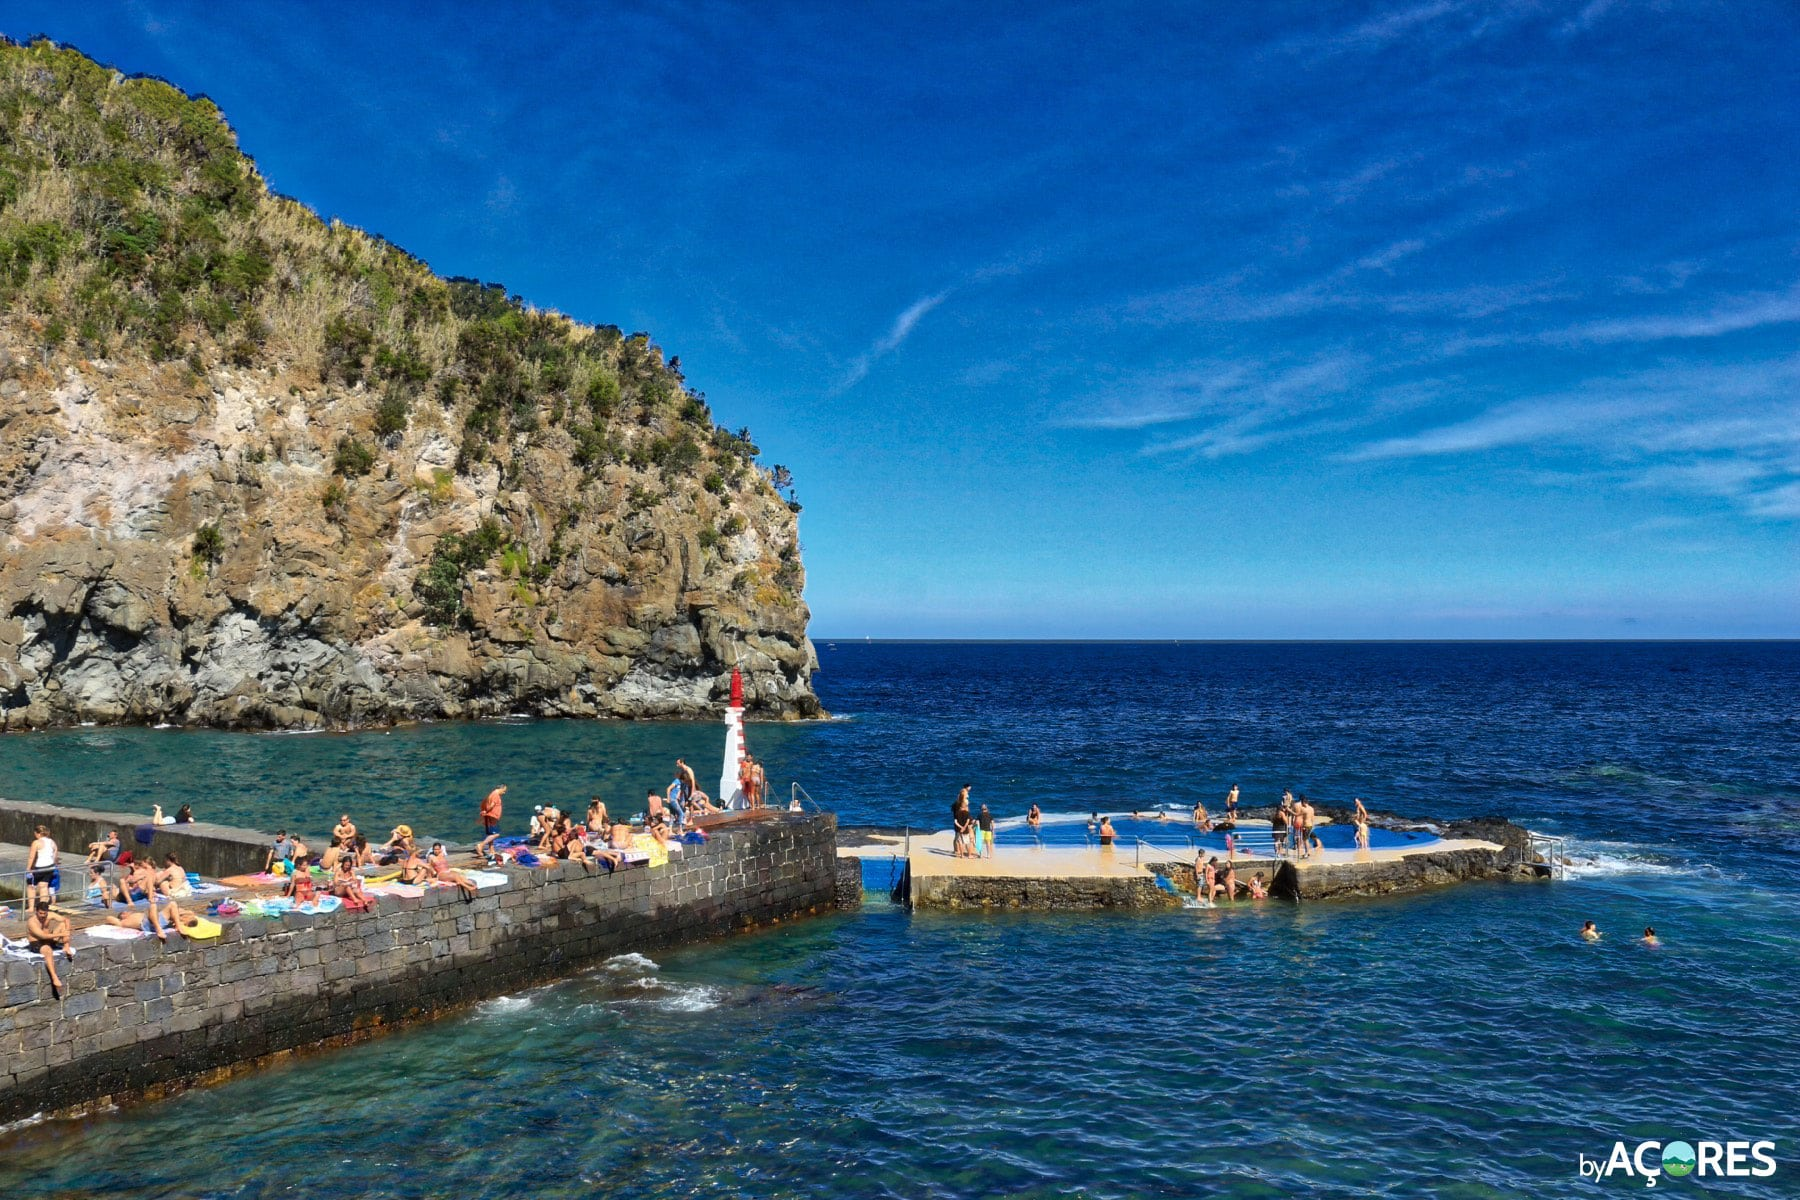 Piscina e costa da Caloura